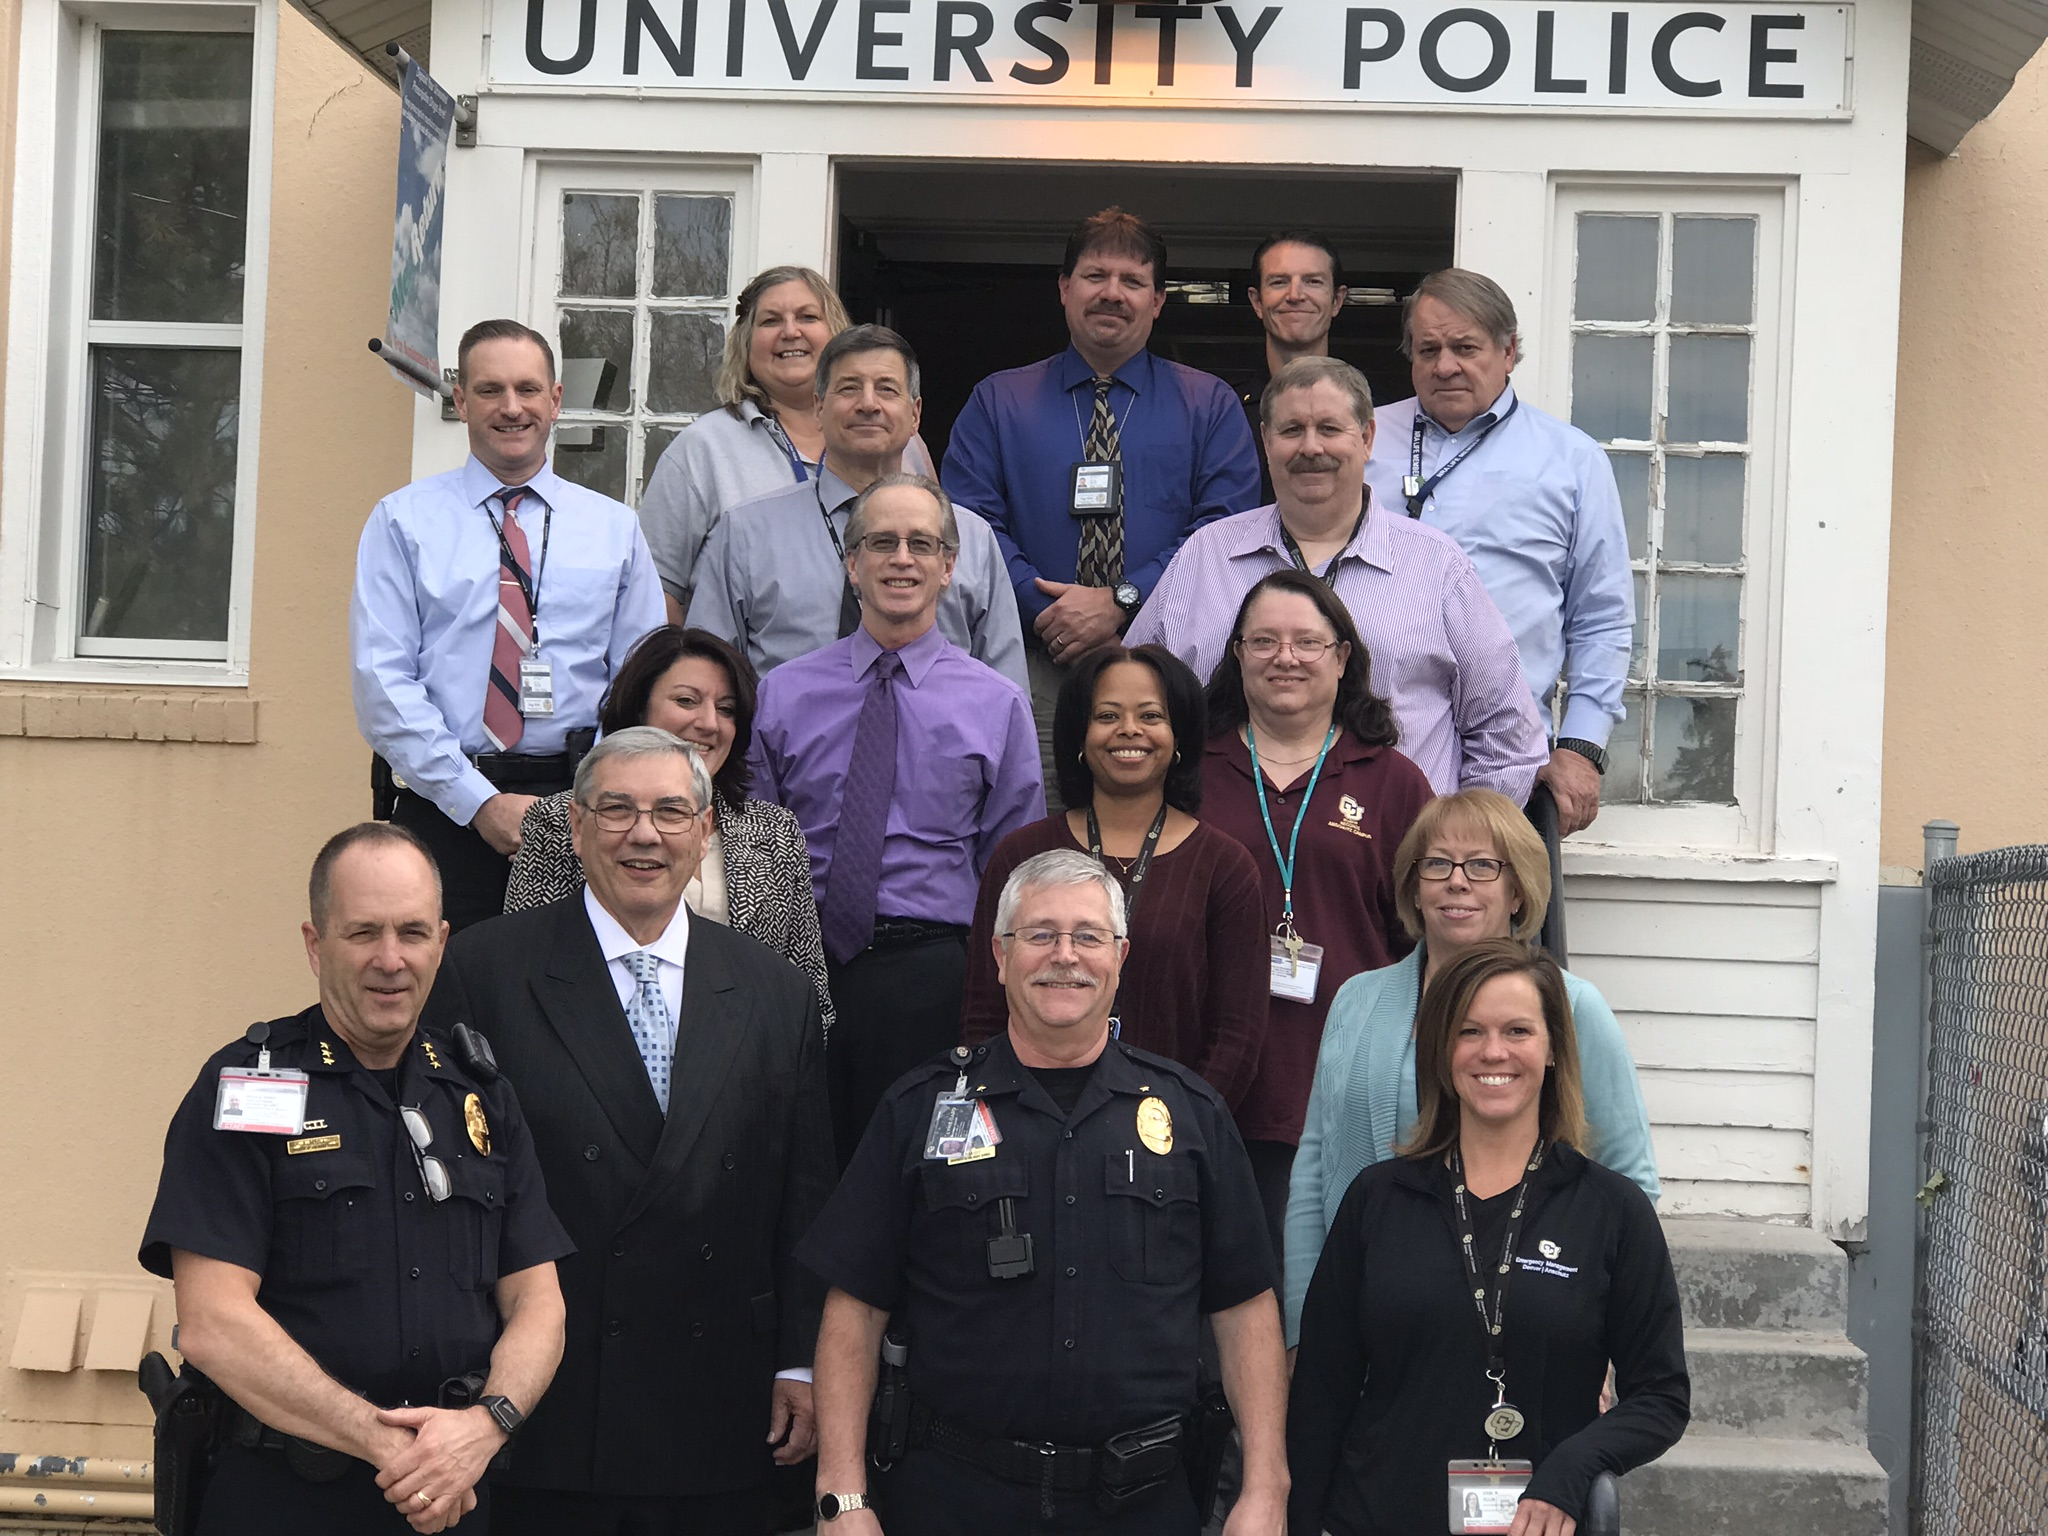 Officers and personnel with IACLEA Accredited agency University of Colorado Denver-Anschutz Medical Campus are all smiles after their successful onsite assessment by an IACLEA team of experts.